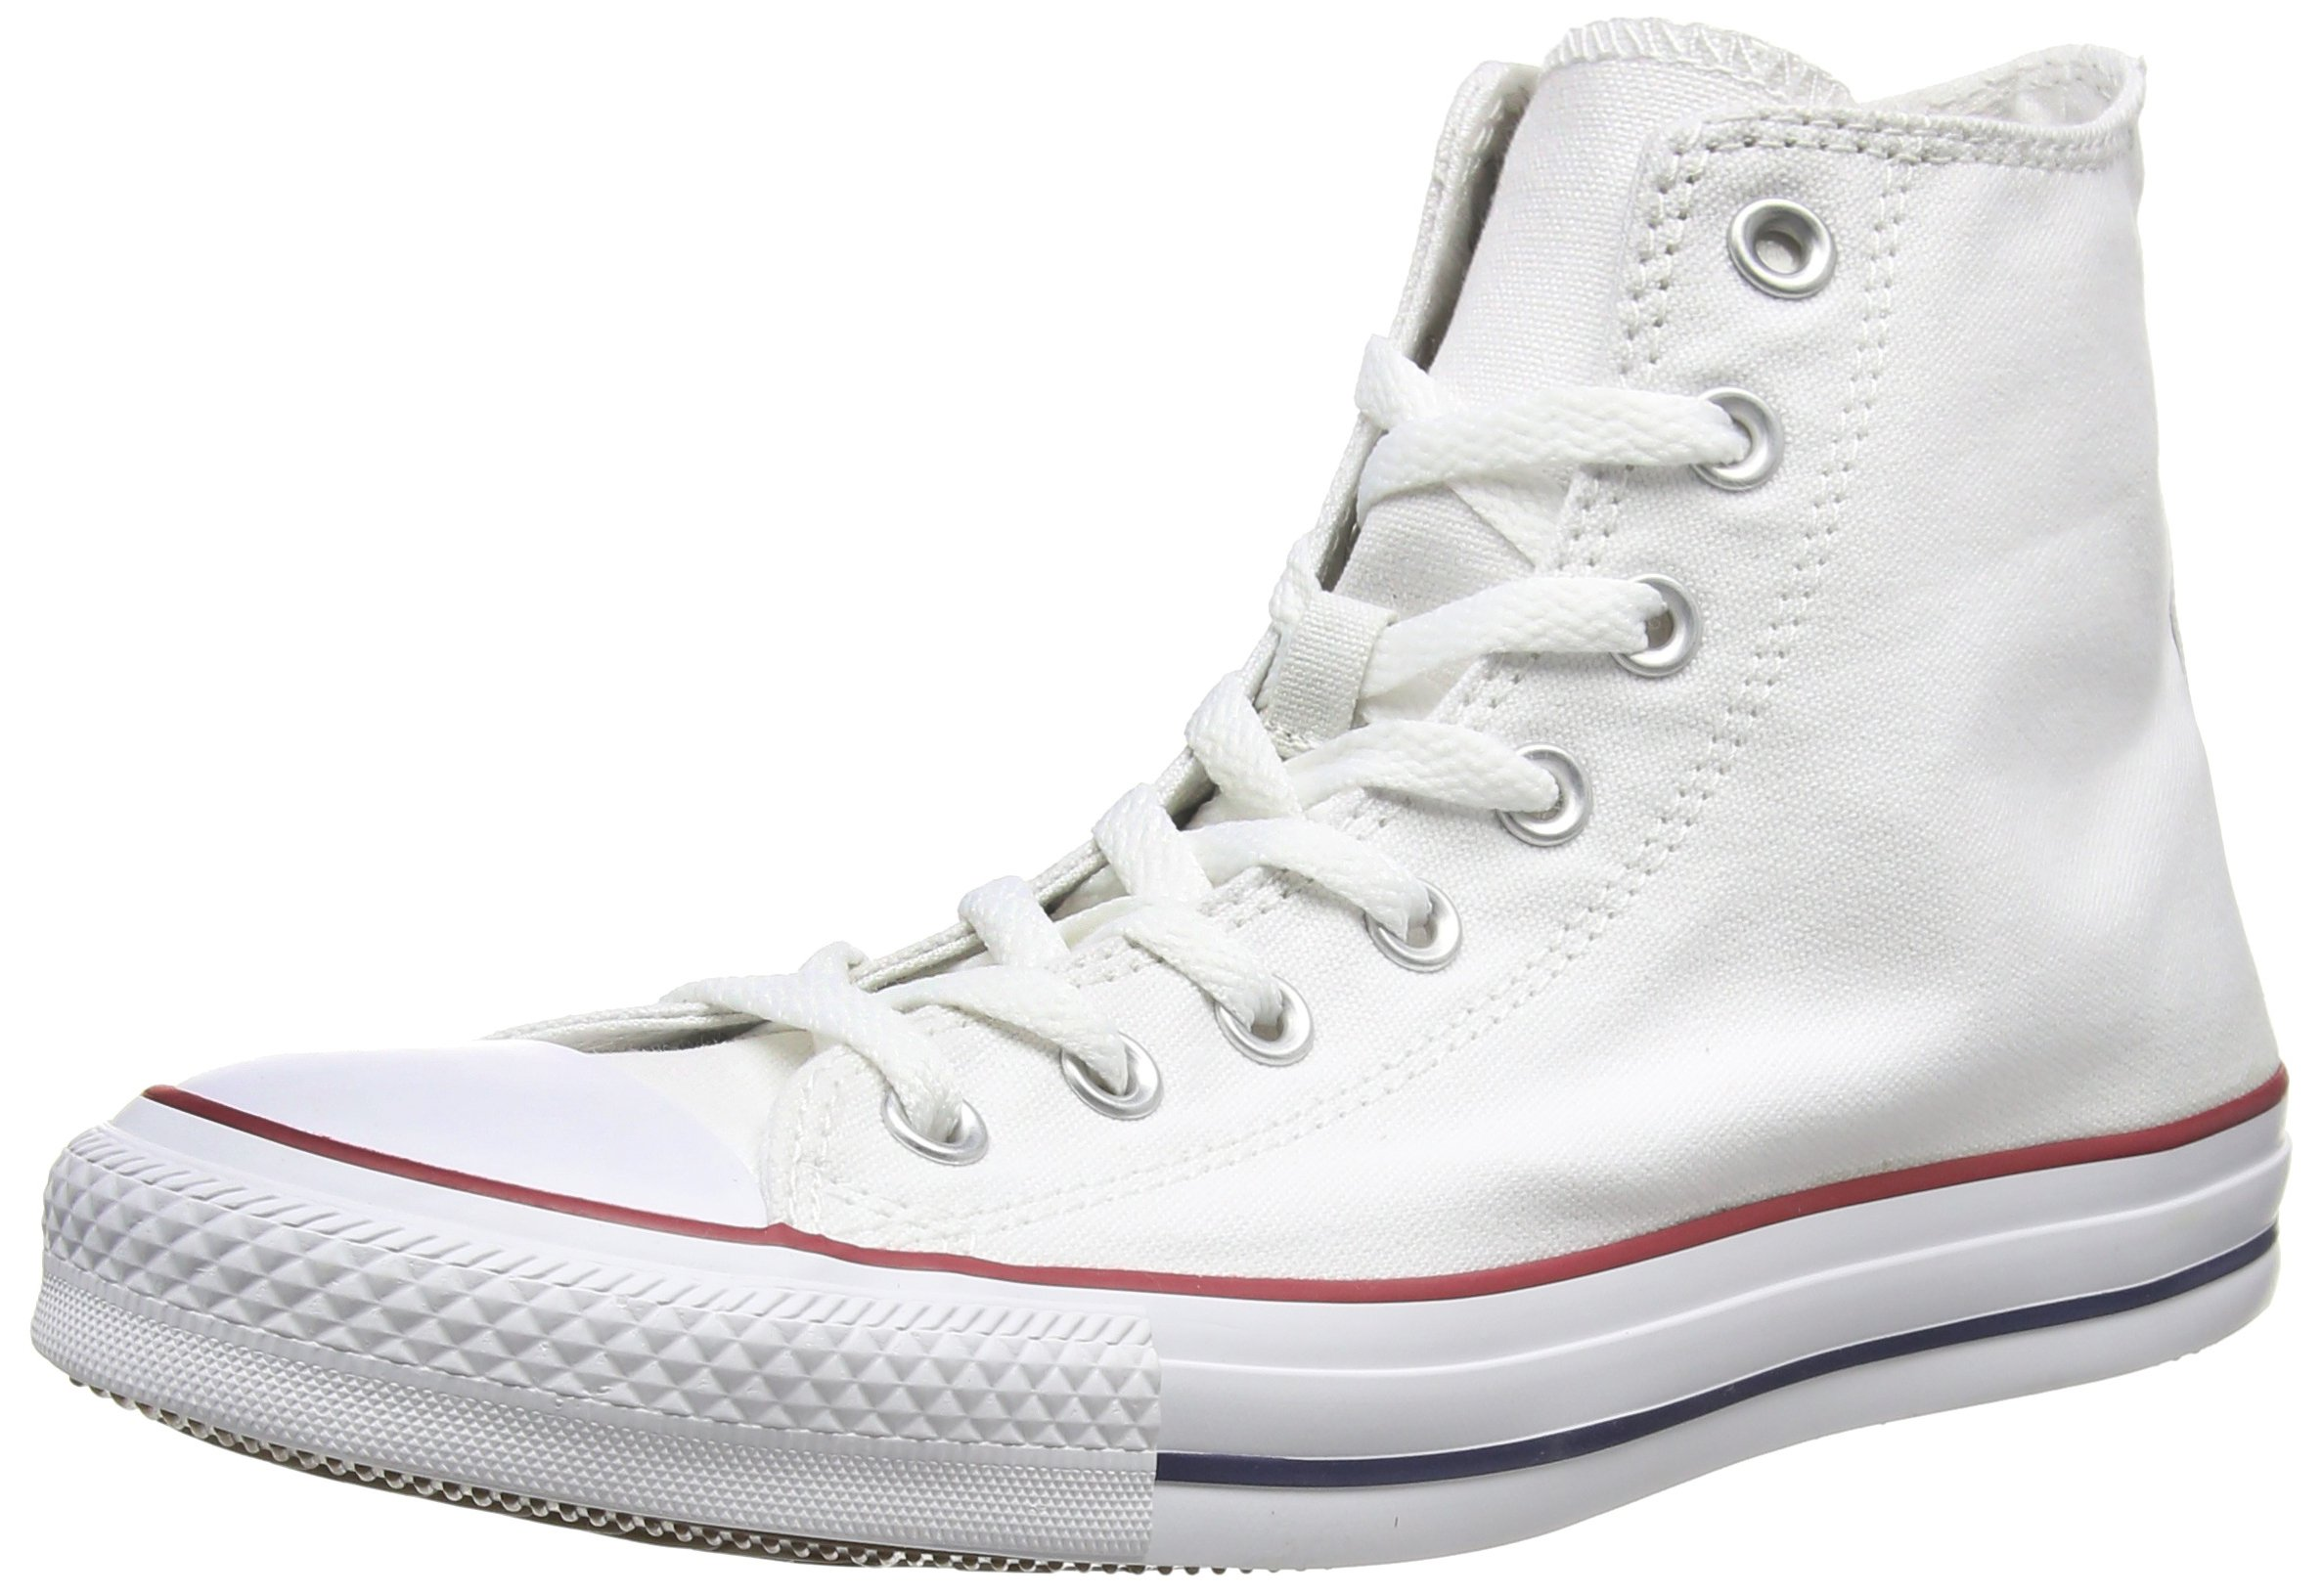 275960d4f3f9 Galleon - Converse Chuck Taylor All Star Canvas High Top Sneaker ...